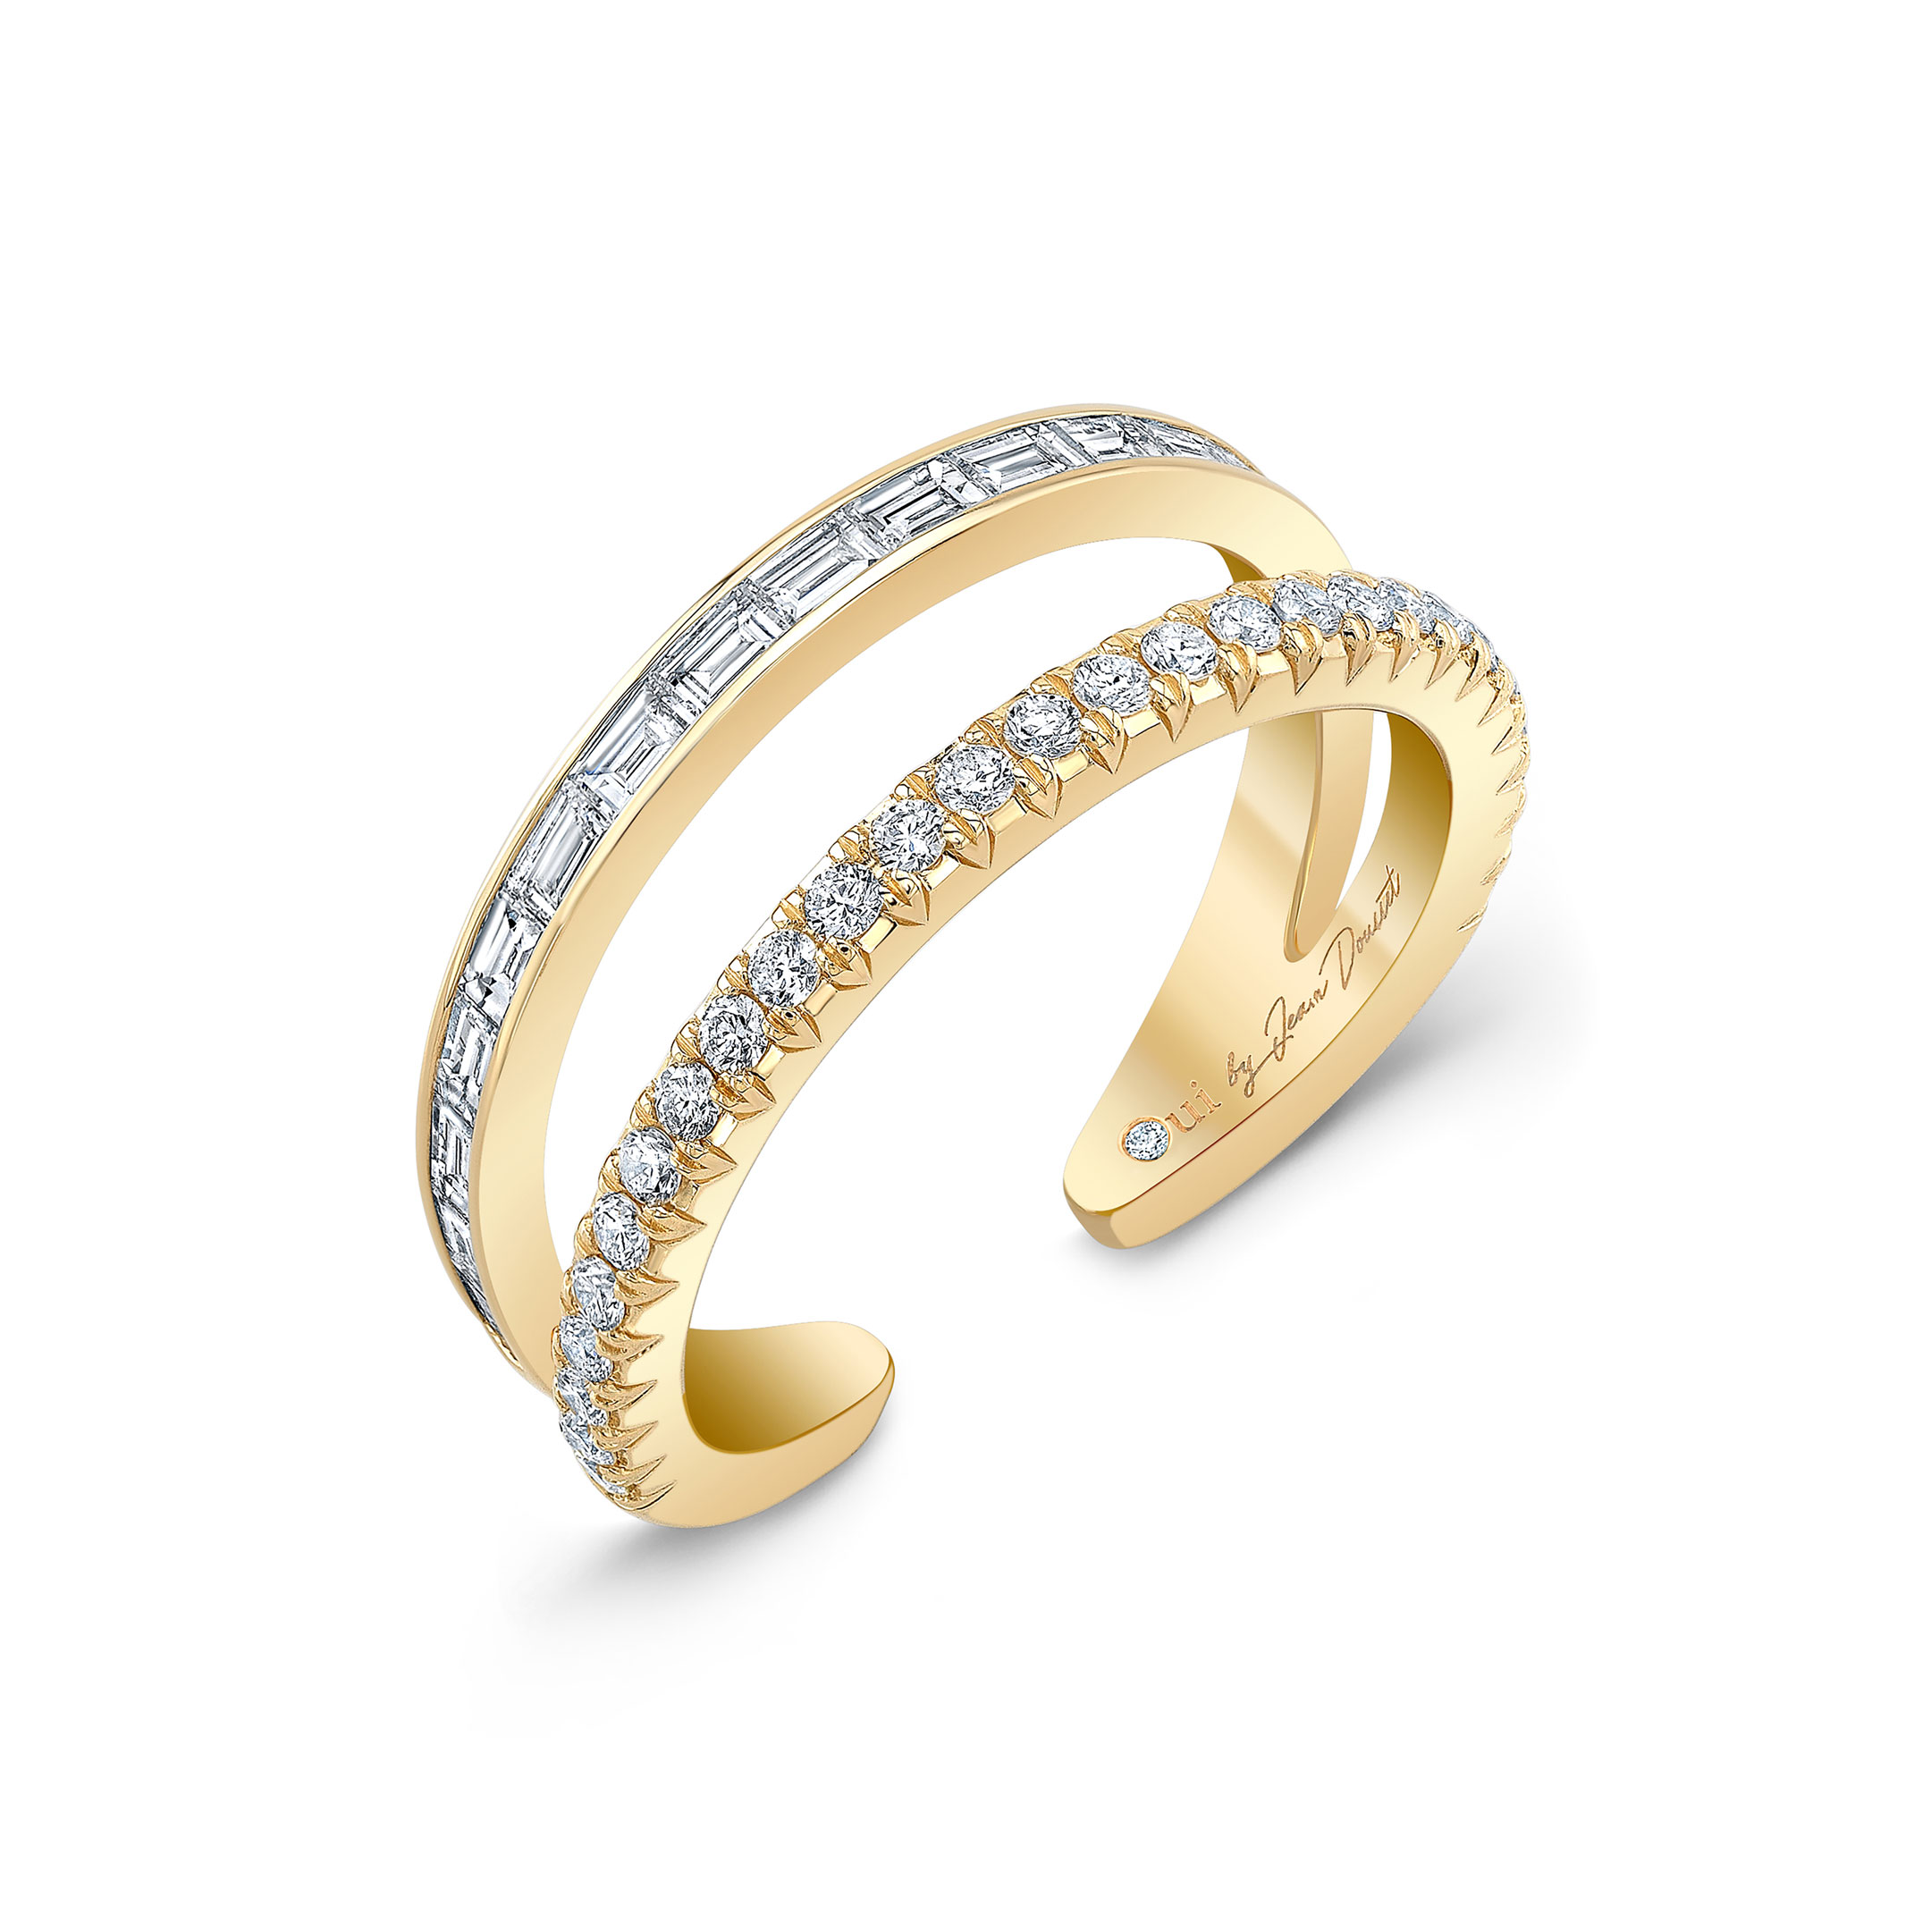 Baguette and Diamond Pavé Double Band Ring in 18k Yellow Gold Profile View by Oui by Jean Dousset